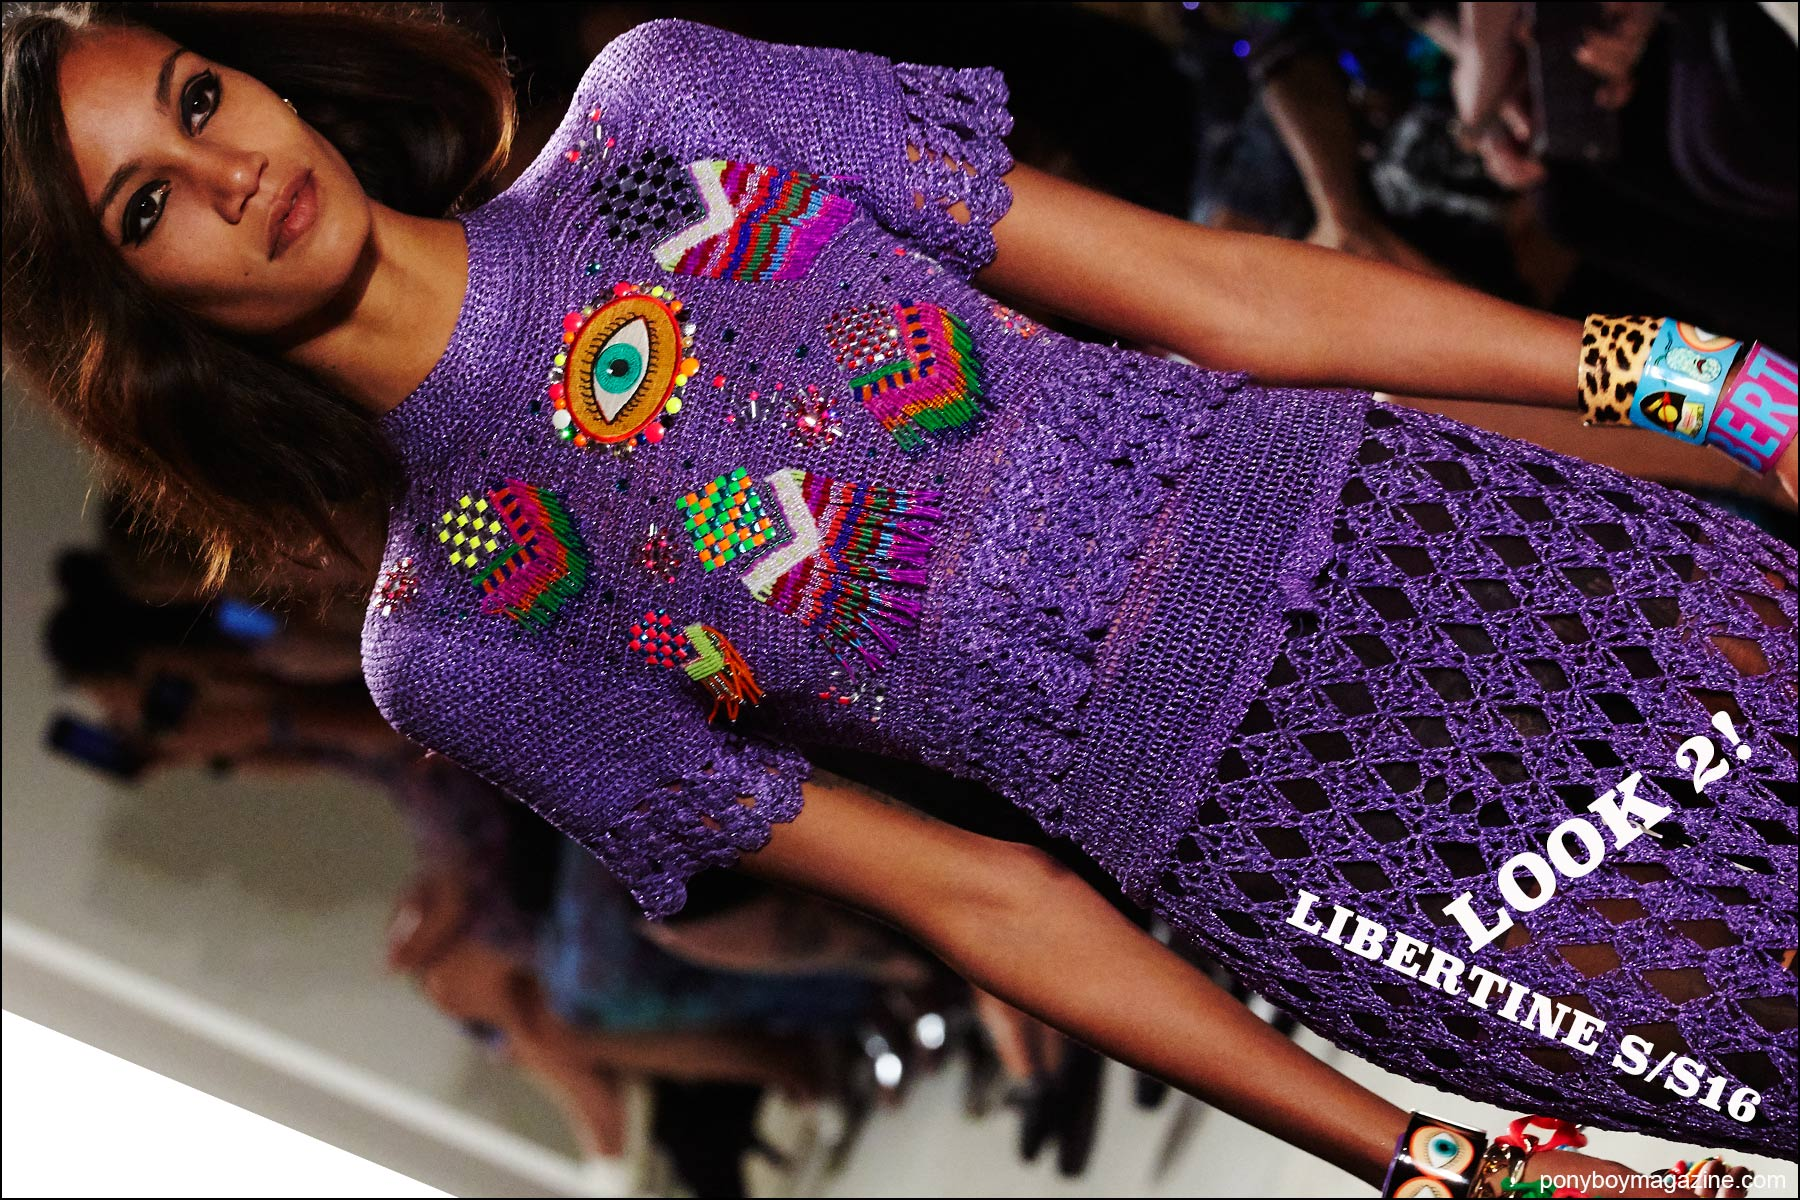 Purple knit applique creation at Libertine S/S16 runway show. Photographed by Alexander Thompson for Ponyboy magazine NY.